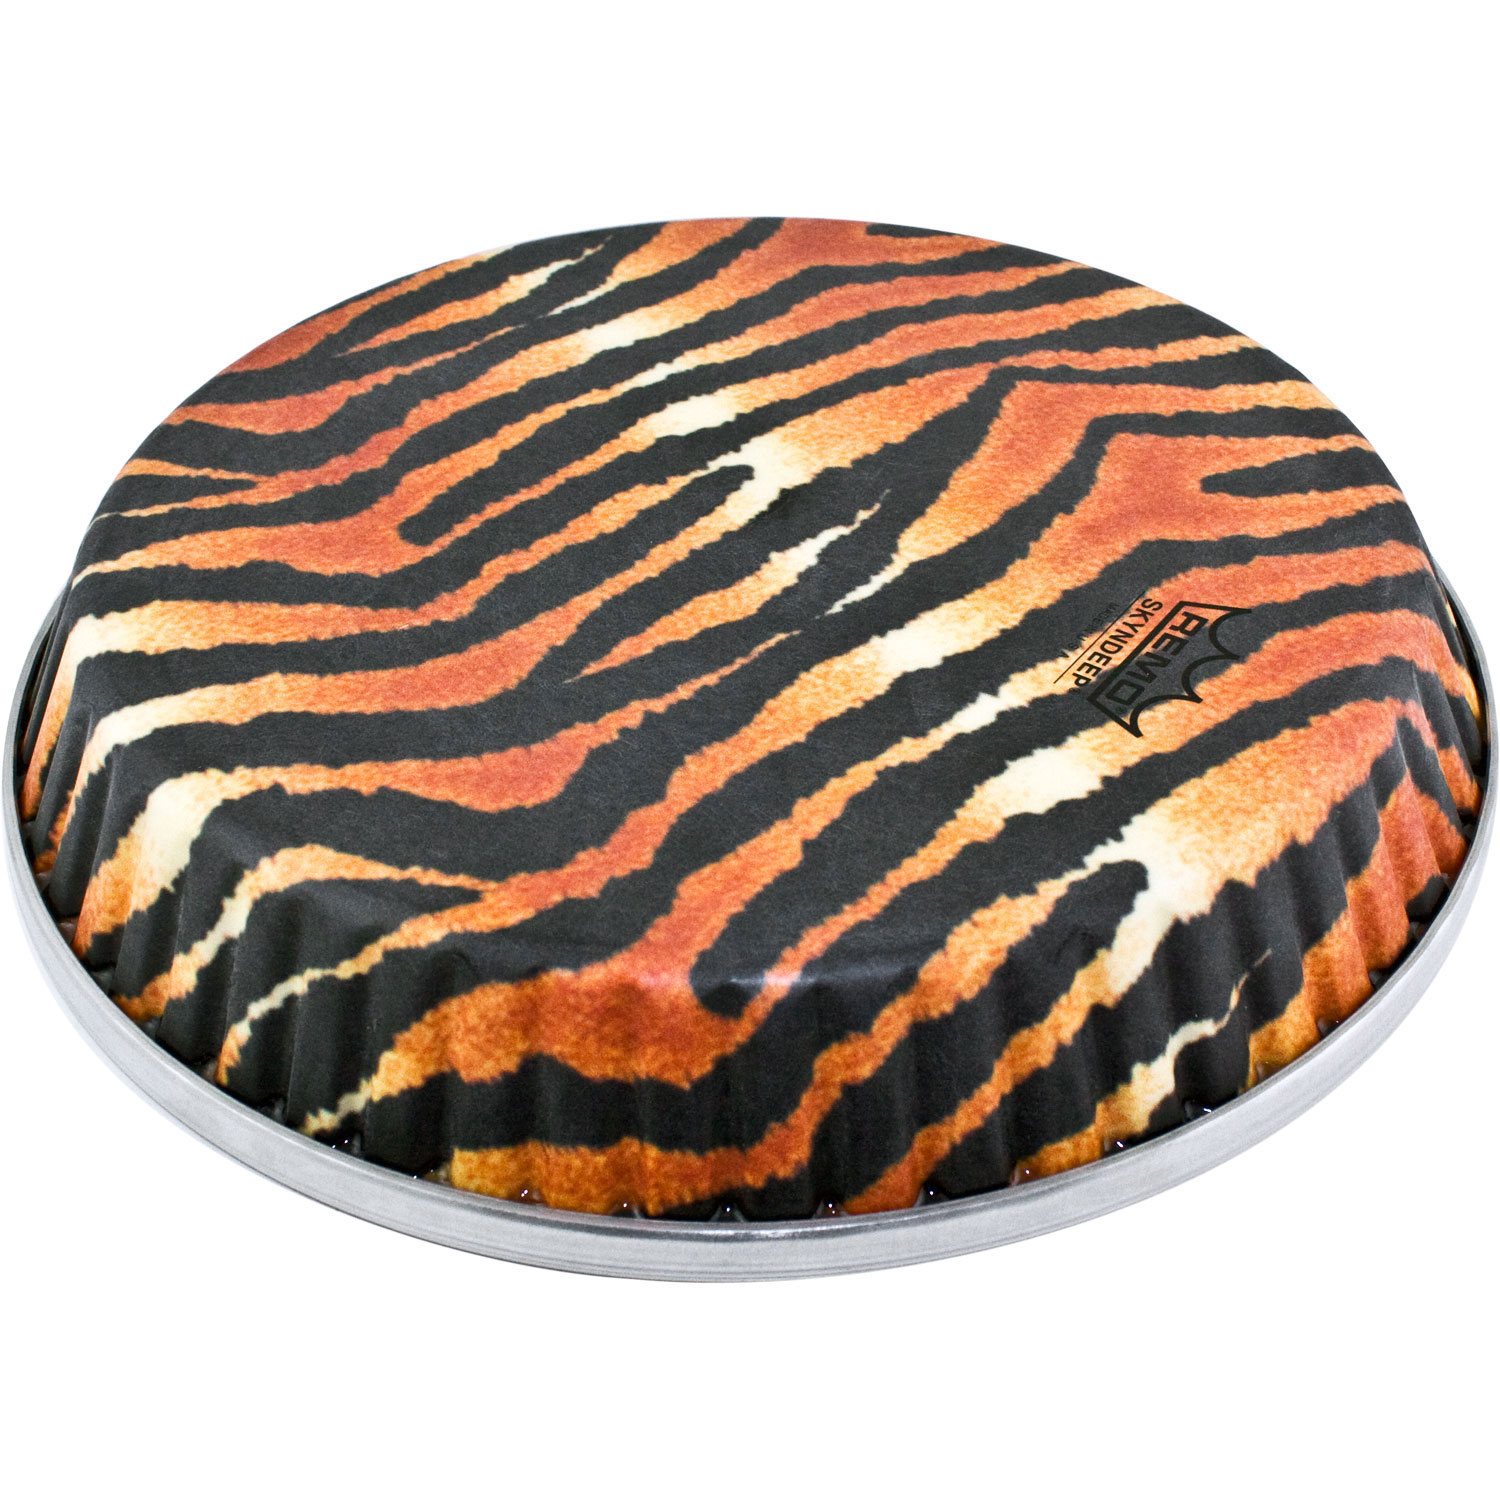 """Remo 12.5"""" Symmetry Skyndeep Conga Drum Head (D2 Collar) with Tiger Stripe Graphic"""